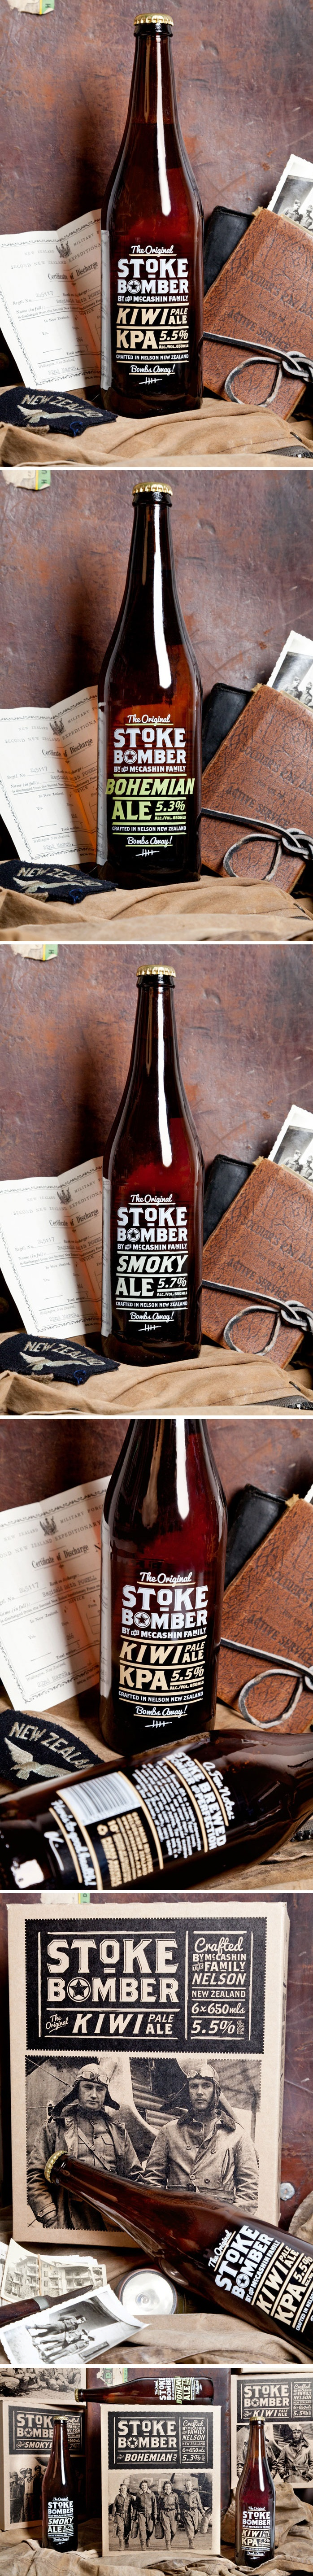 Stoke Beer designed by Supply, New Zealand.